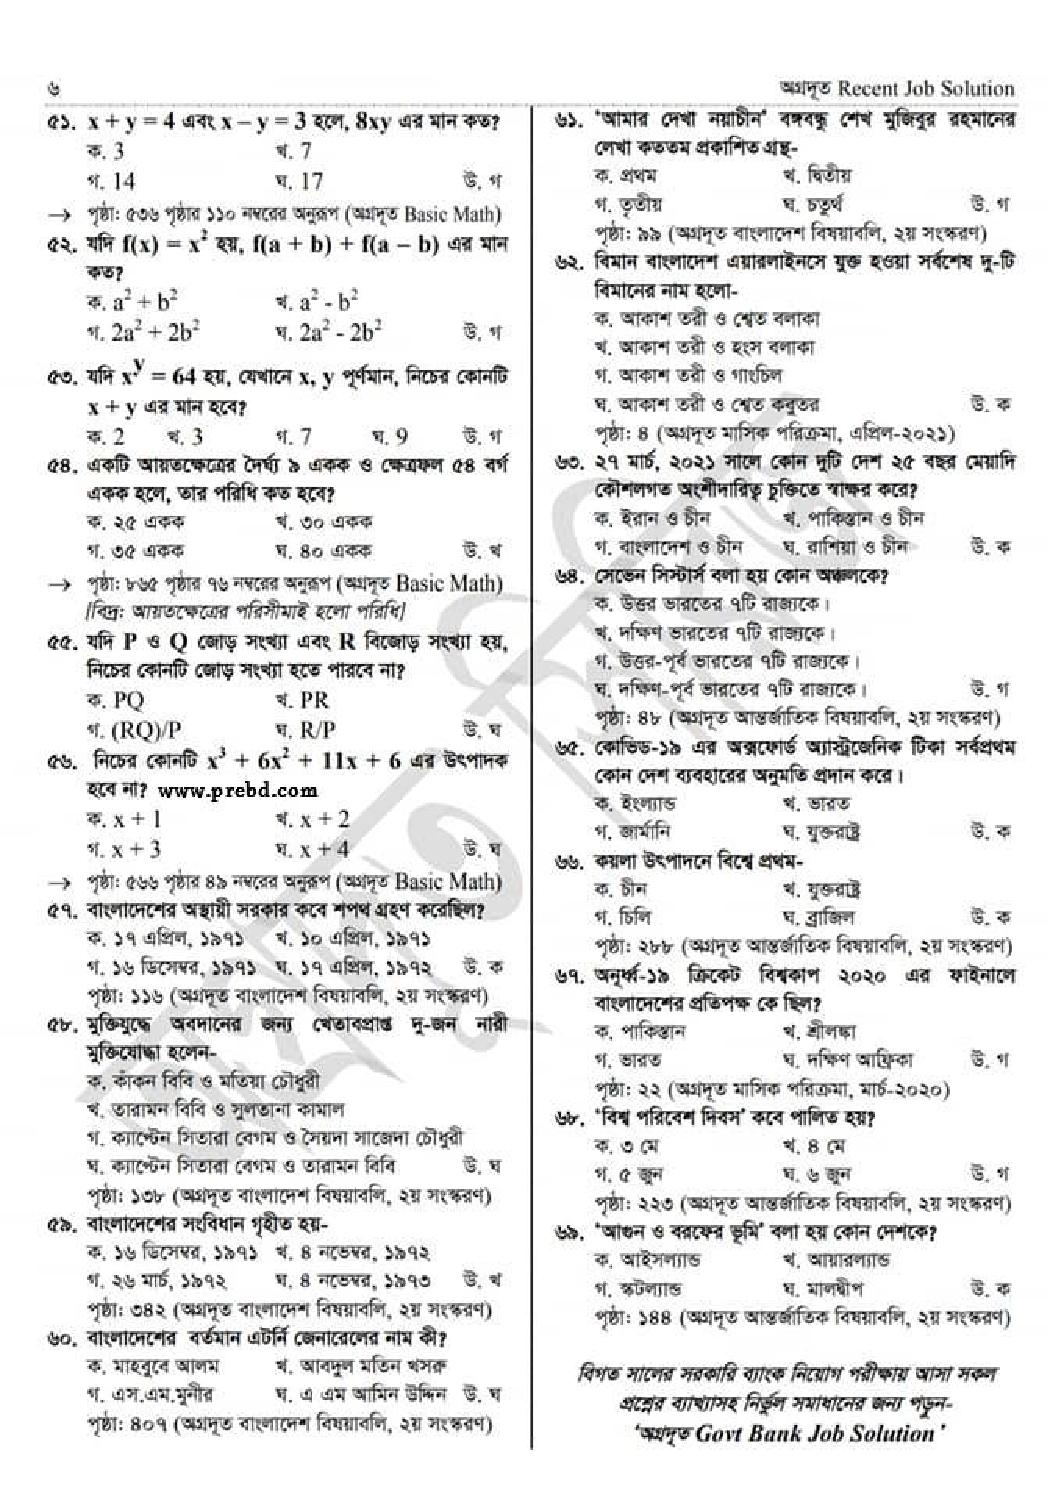 NSI-Watcher-Constable-Solution-page-008